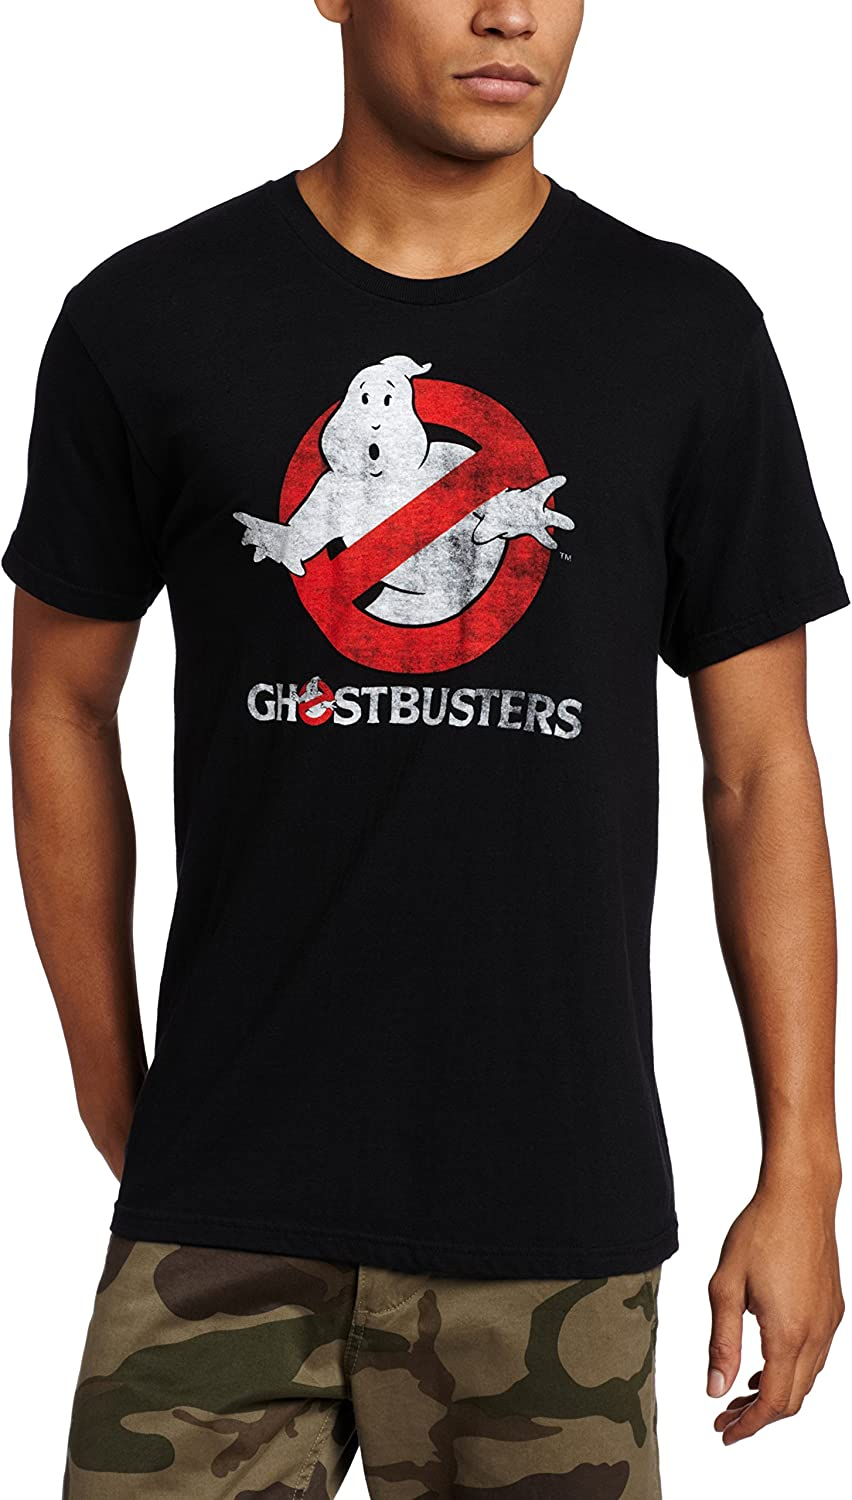 Ghostbusters Men's Ghostbusters Logo Costume T-Shirt